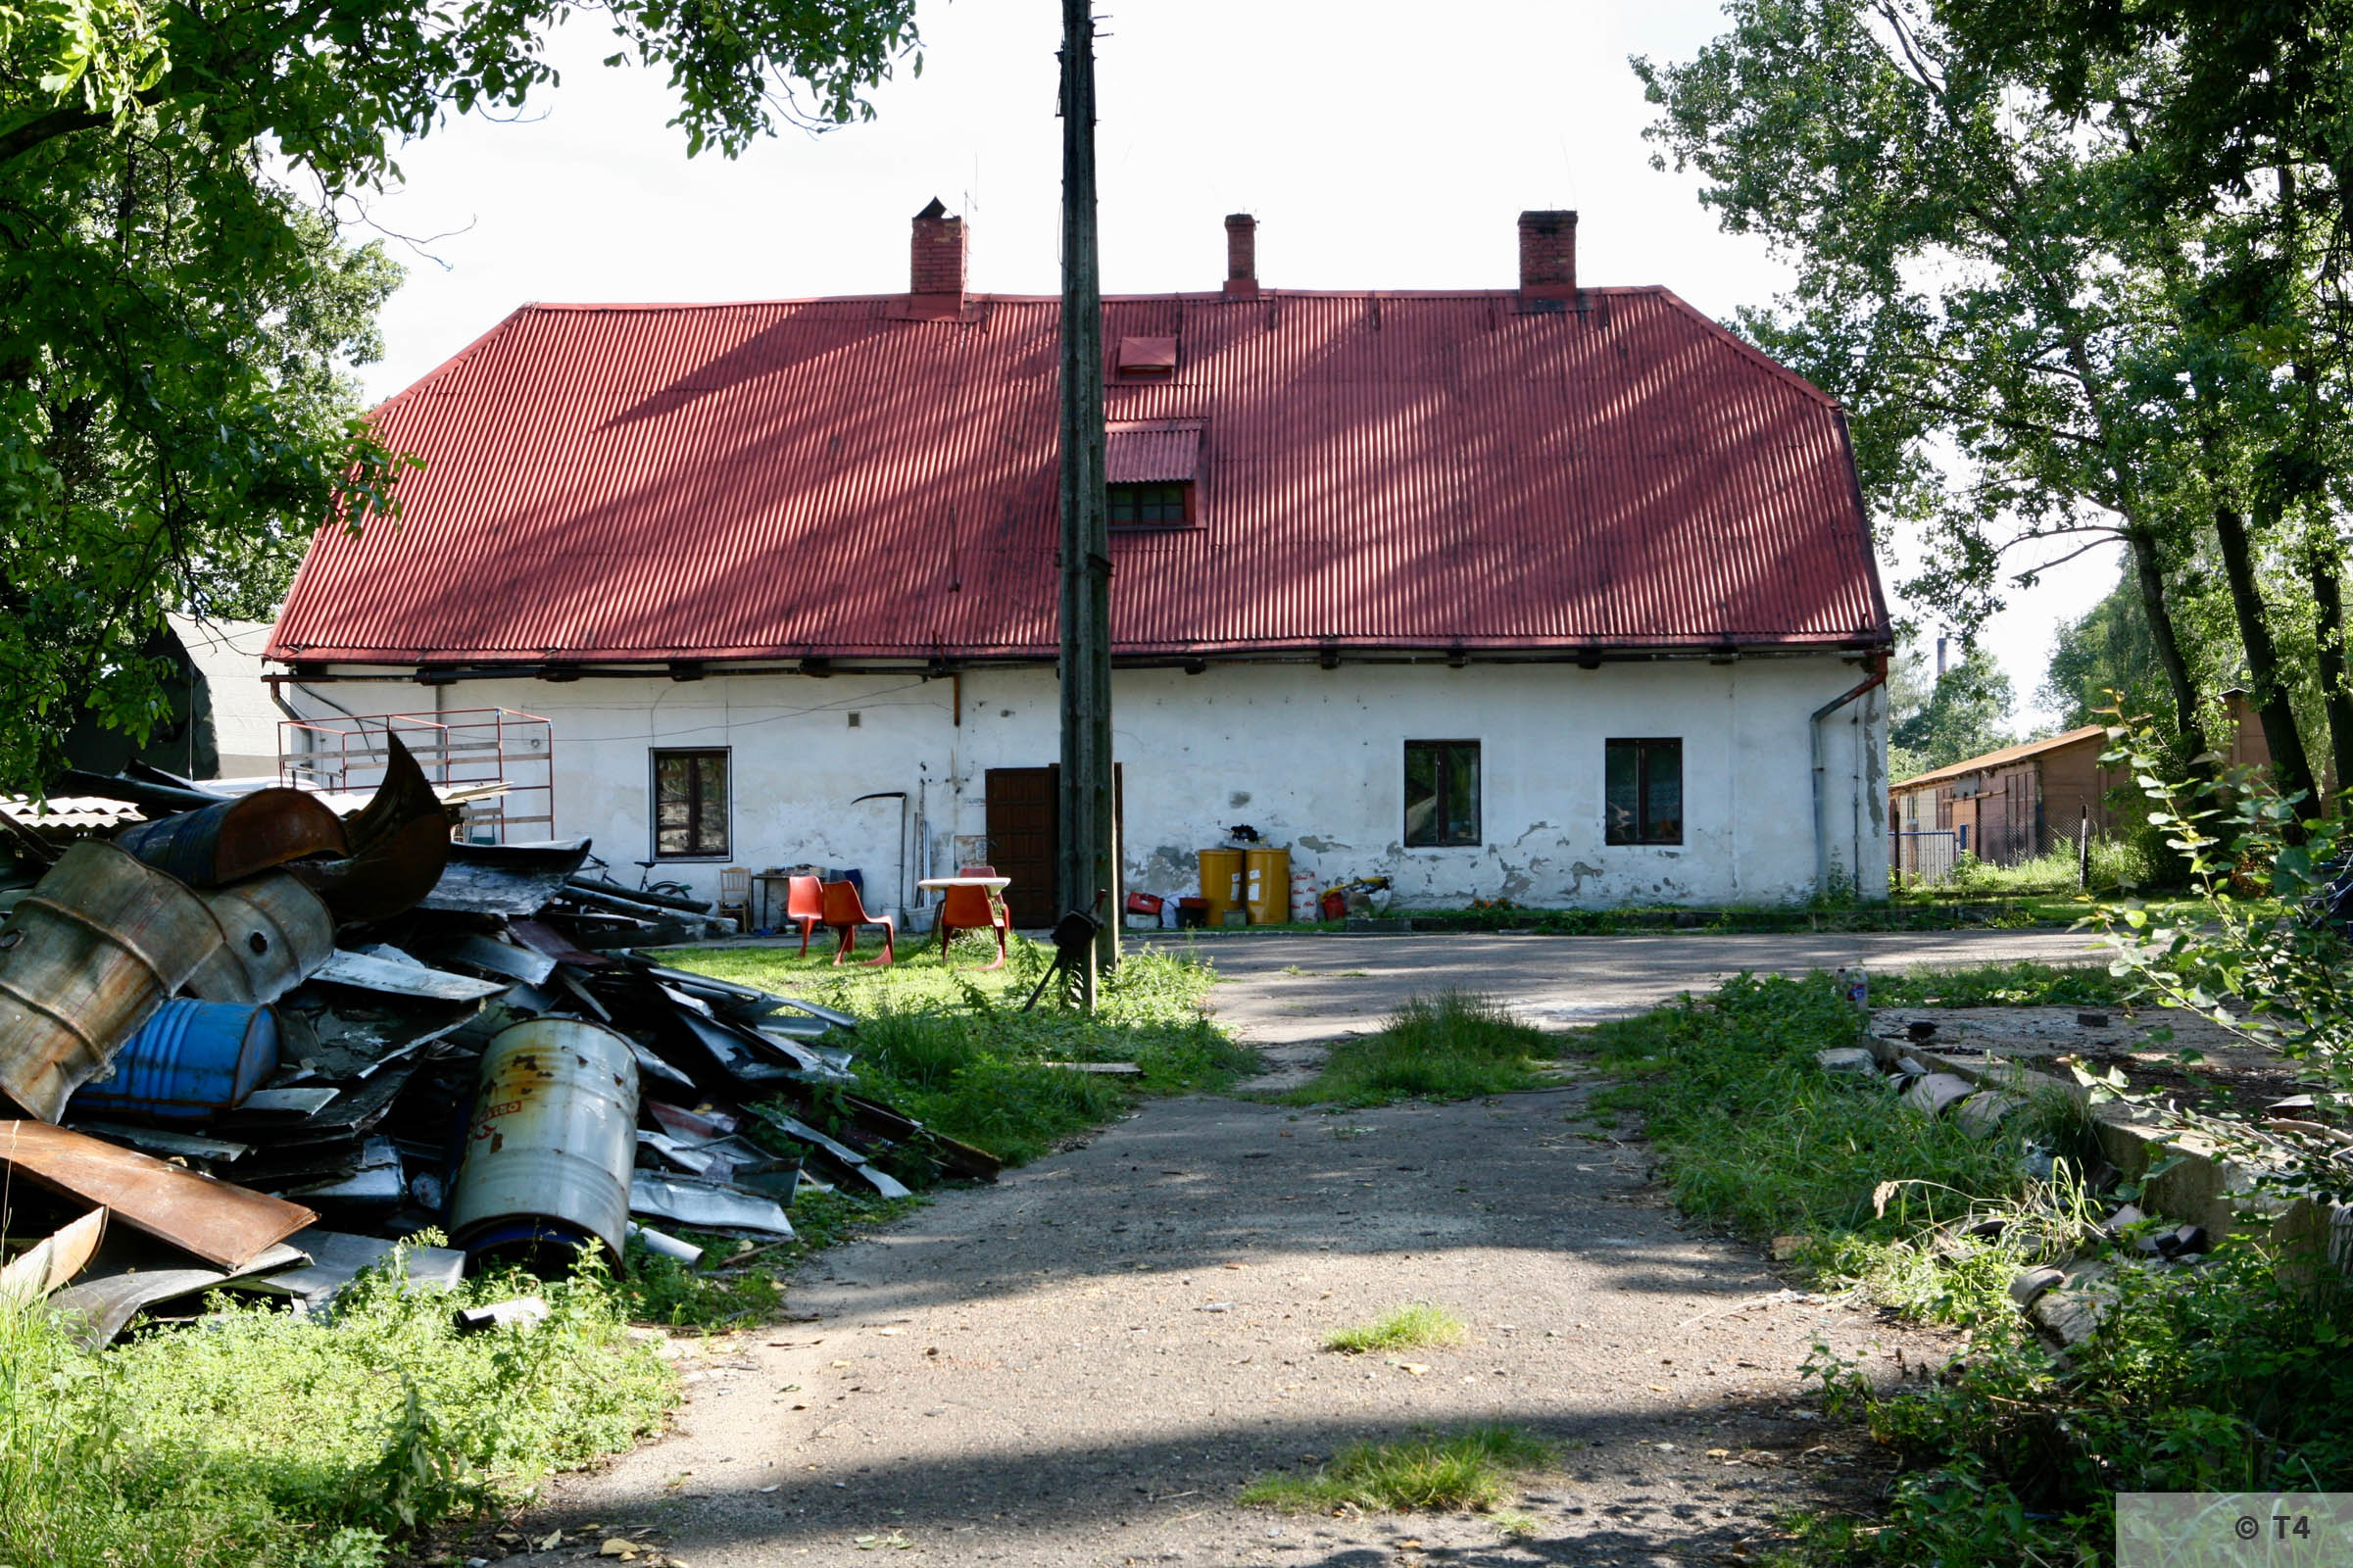 Former smithy building from inside the former sub camp. 2007 T4 9293